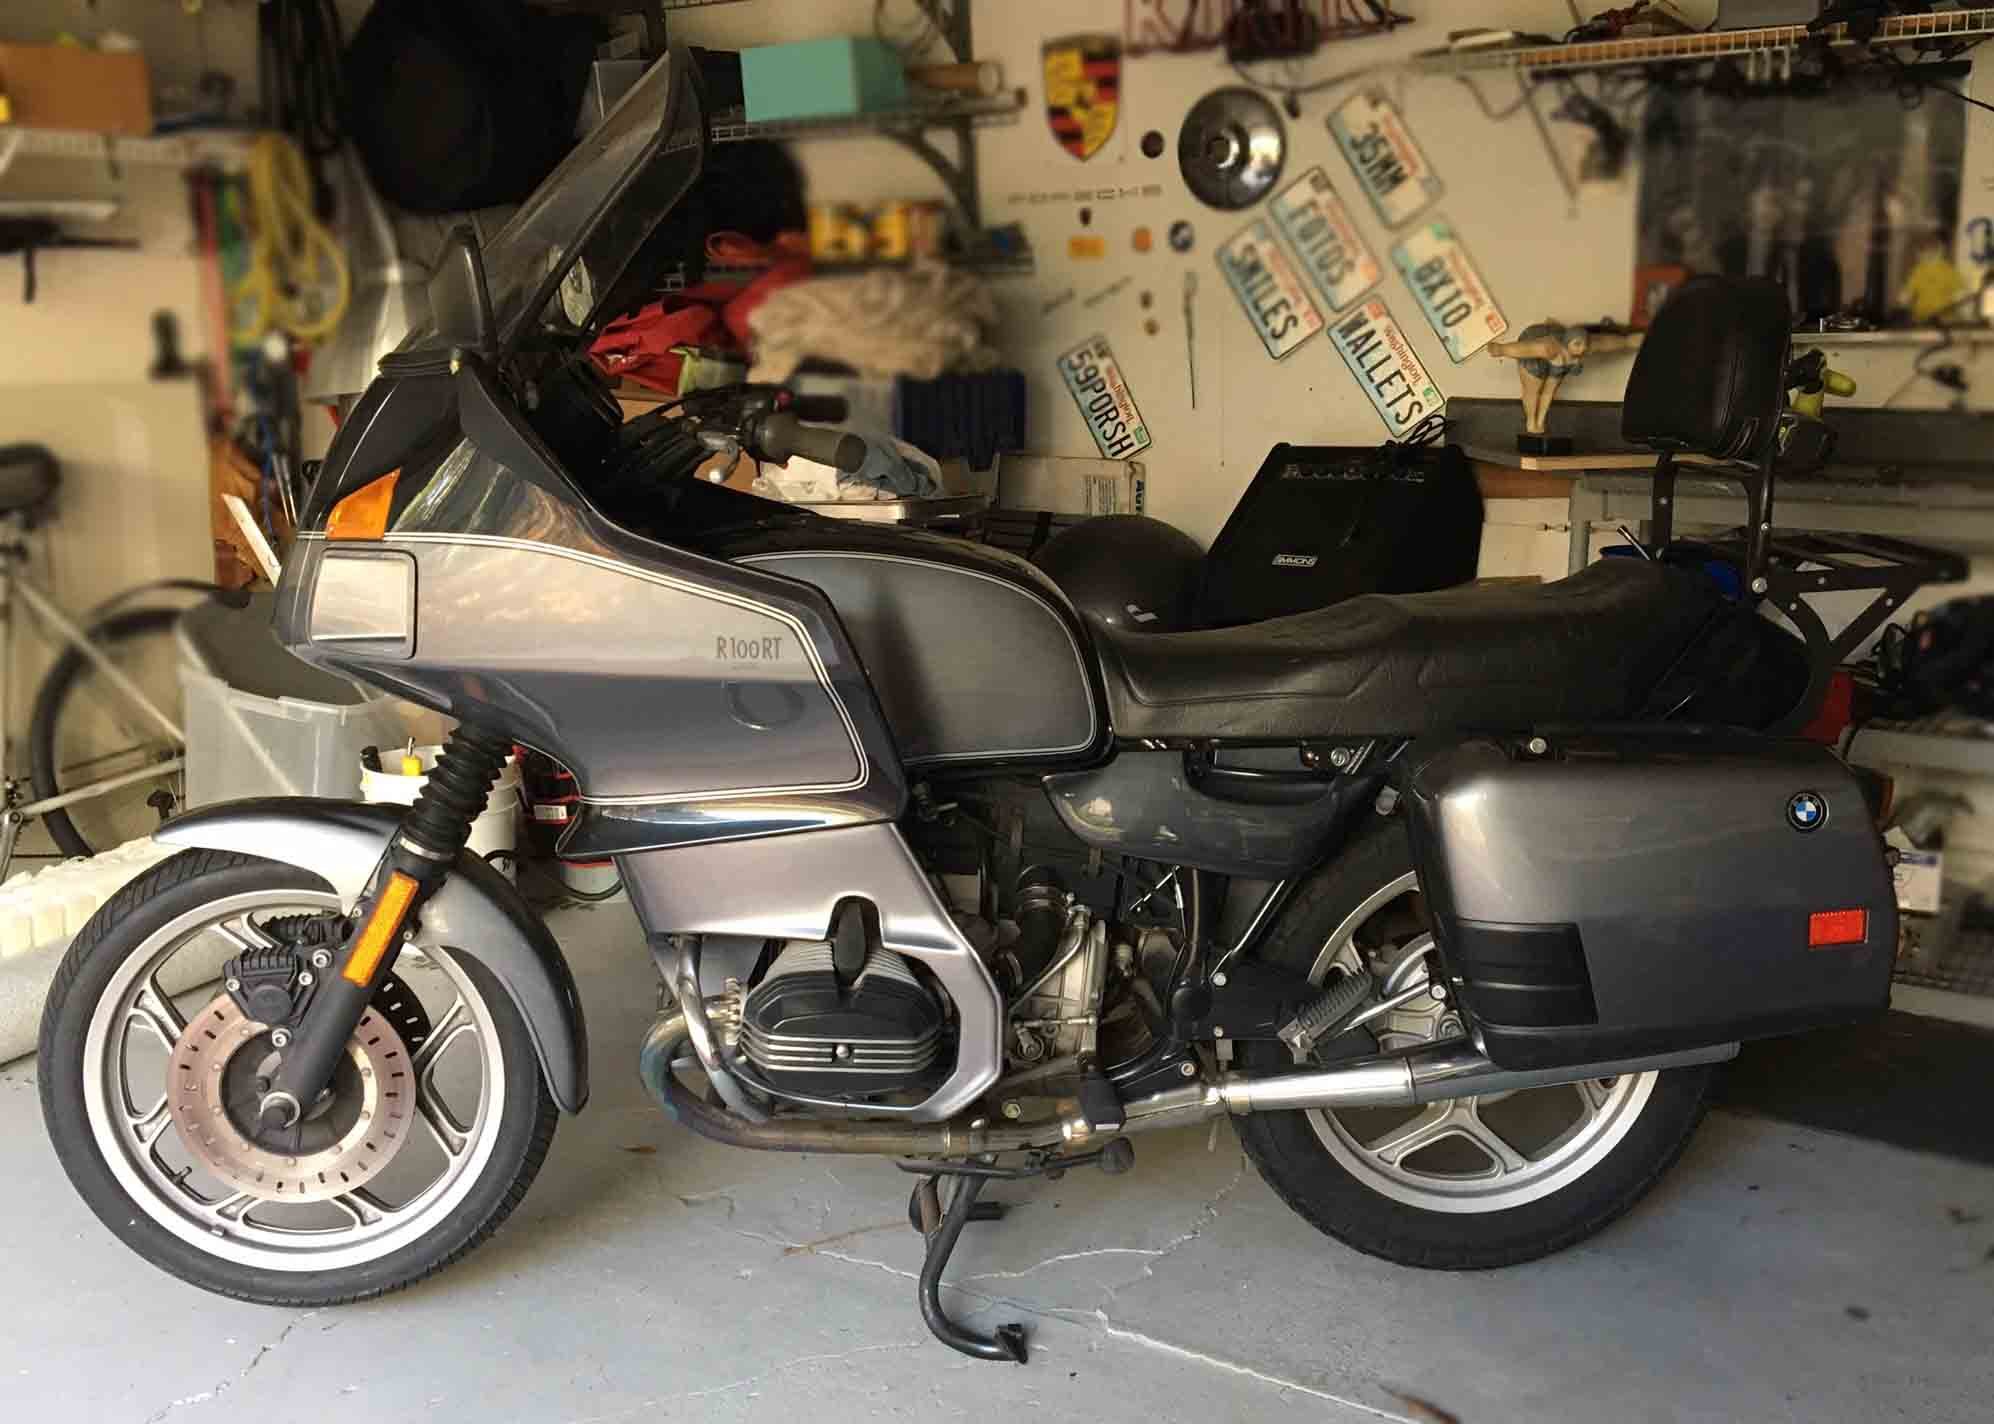 1995 BMW R100RT-resize.jpg